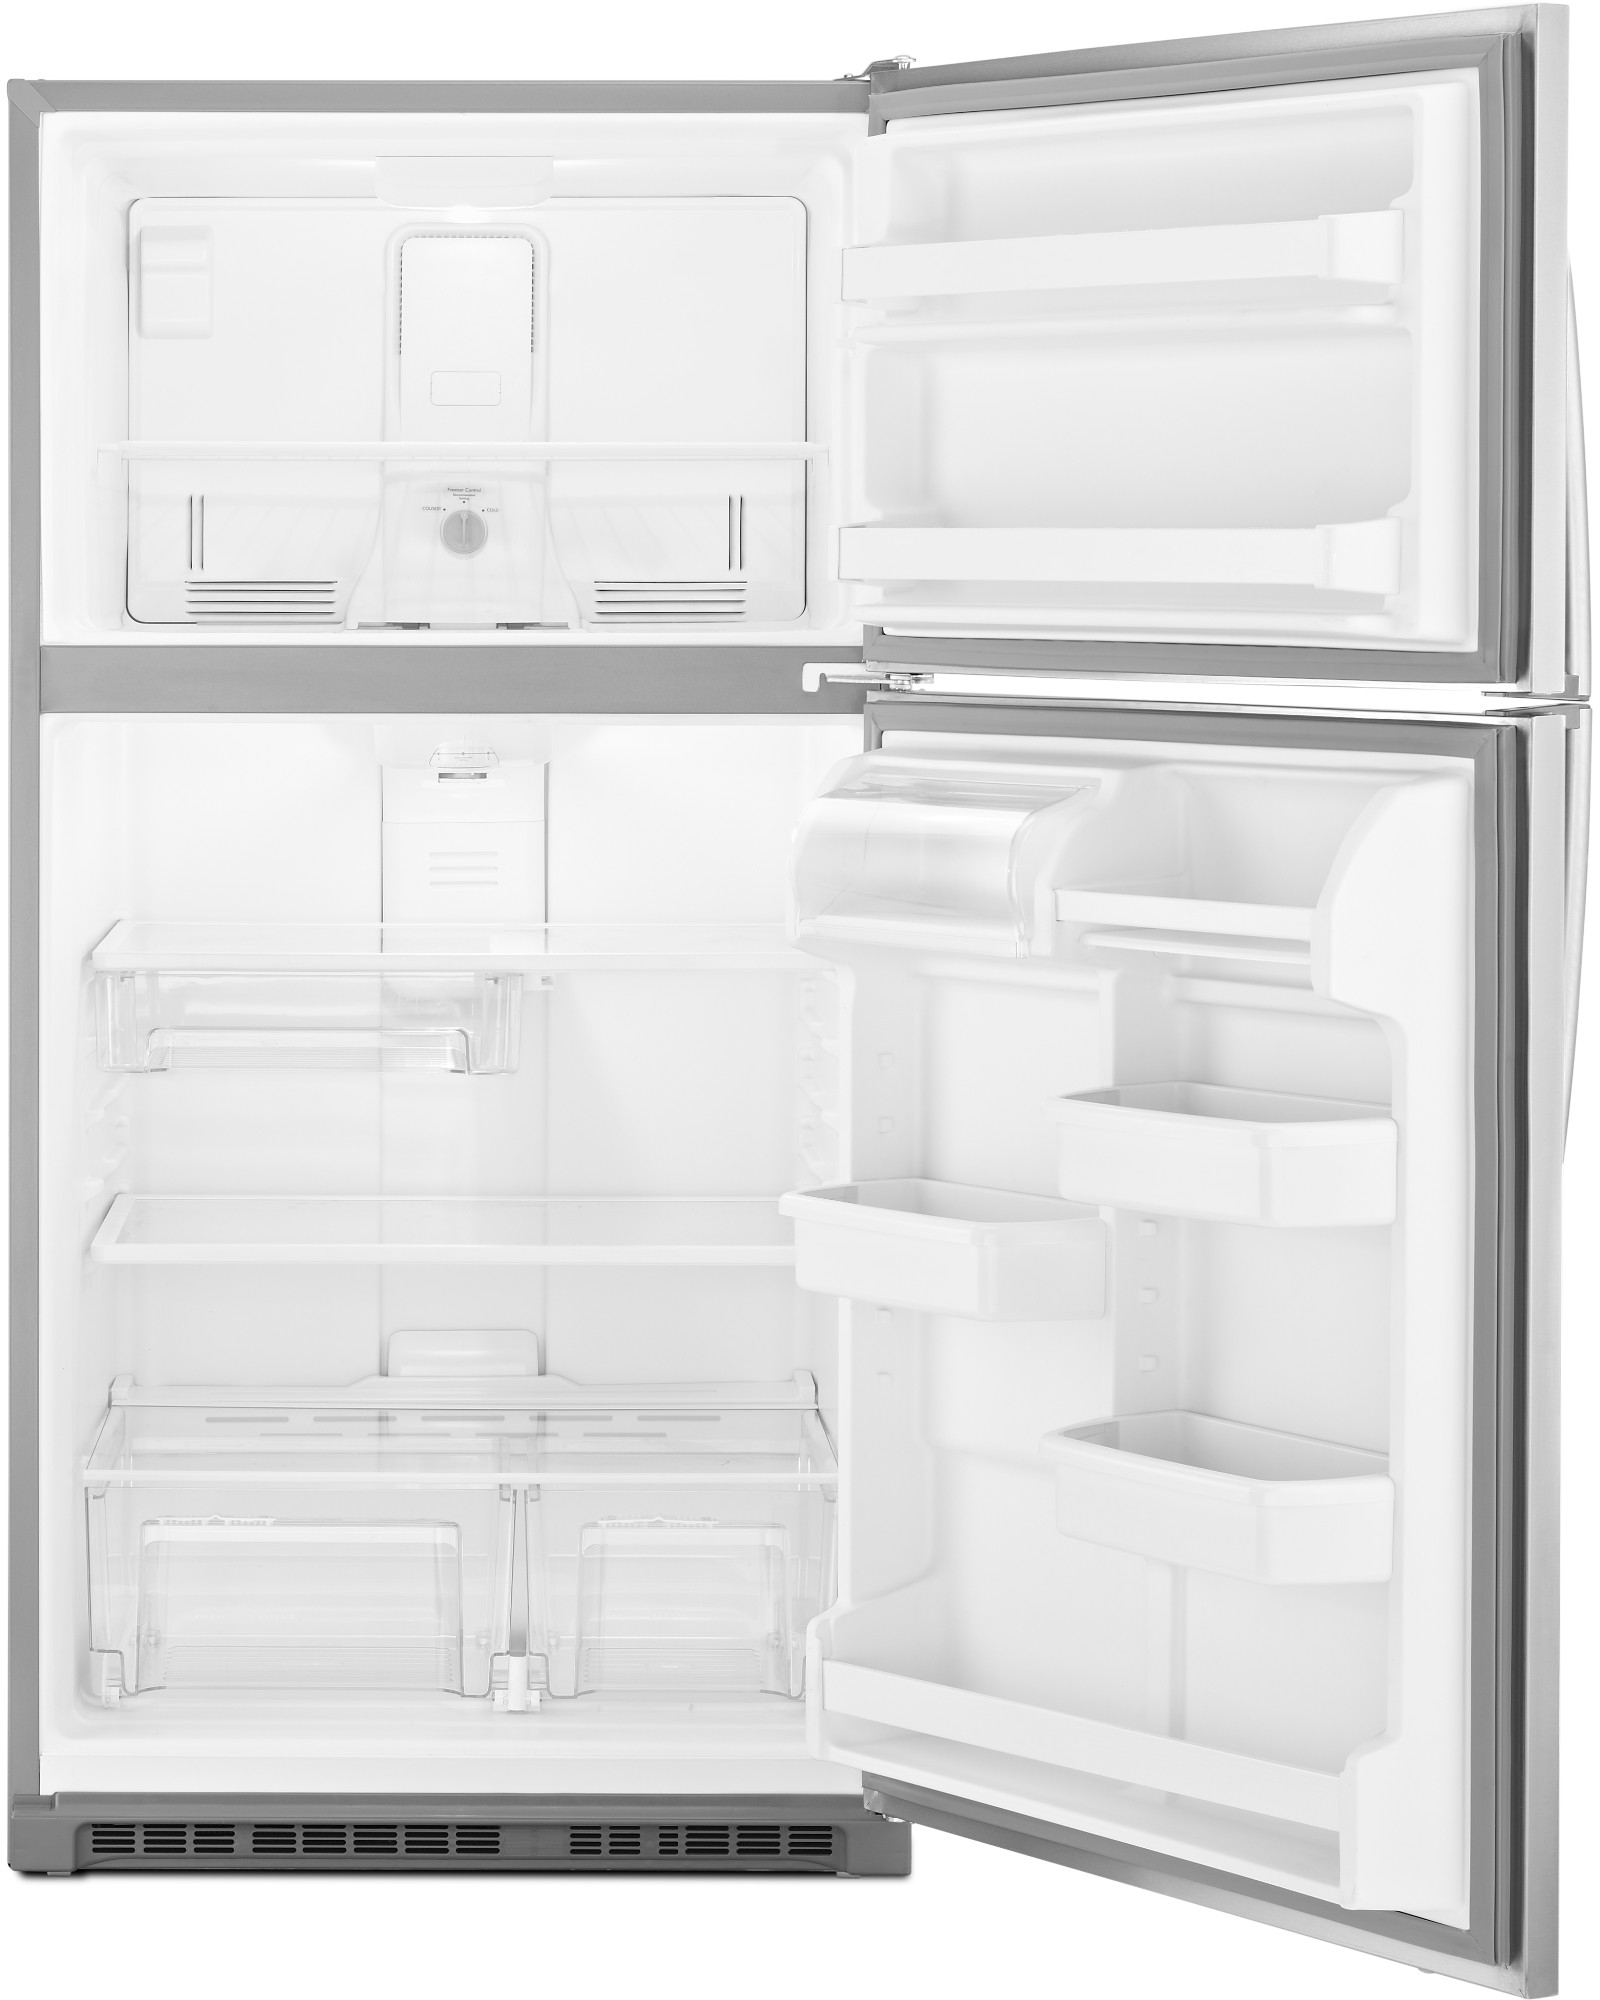 Kenmore 60213 20.5 cu. ft. Top Freezer Refrigerator w/ Humidity-Controlled Crispers - Stainless Steel